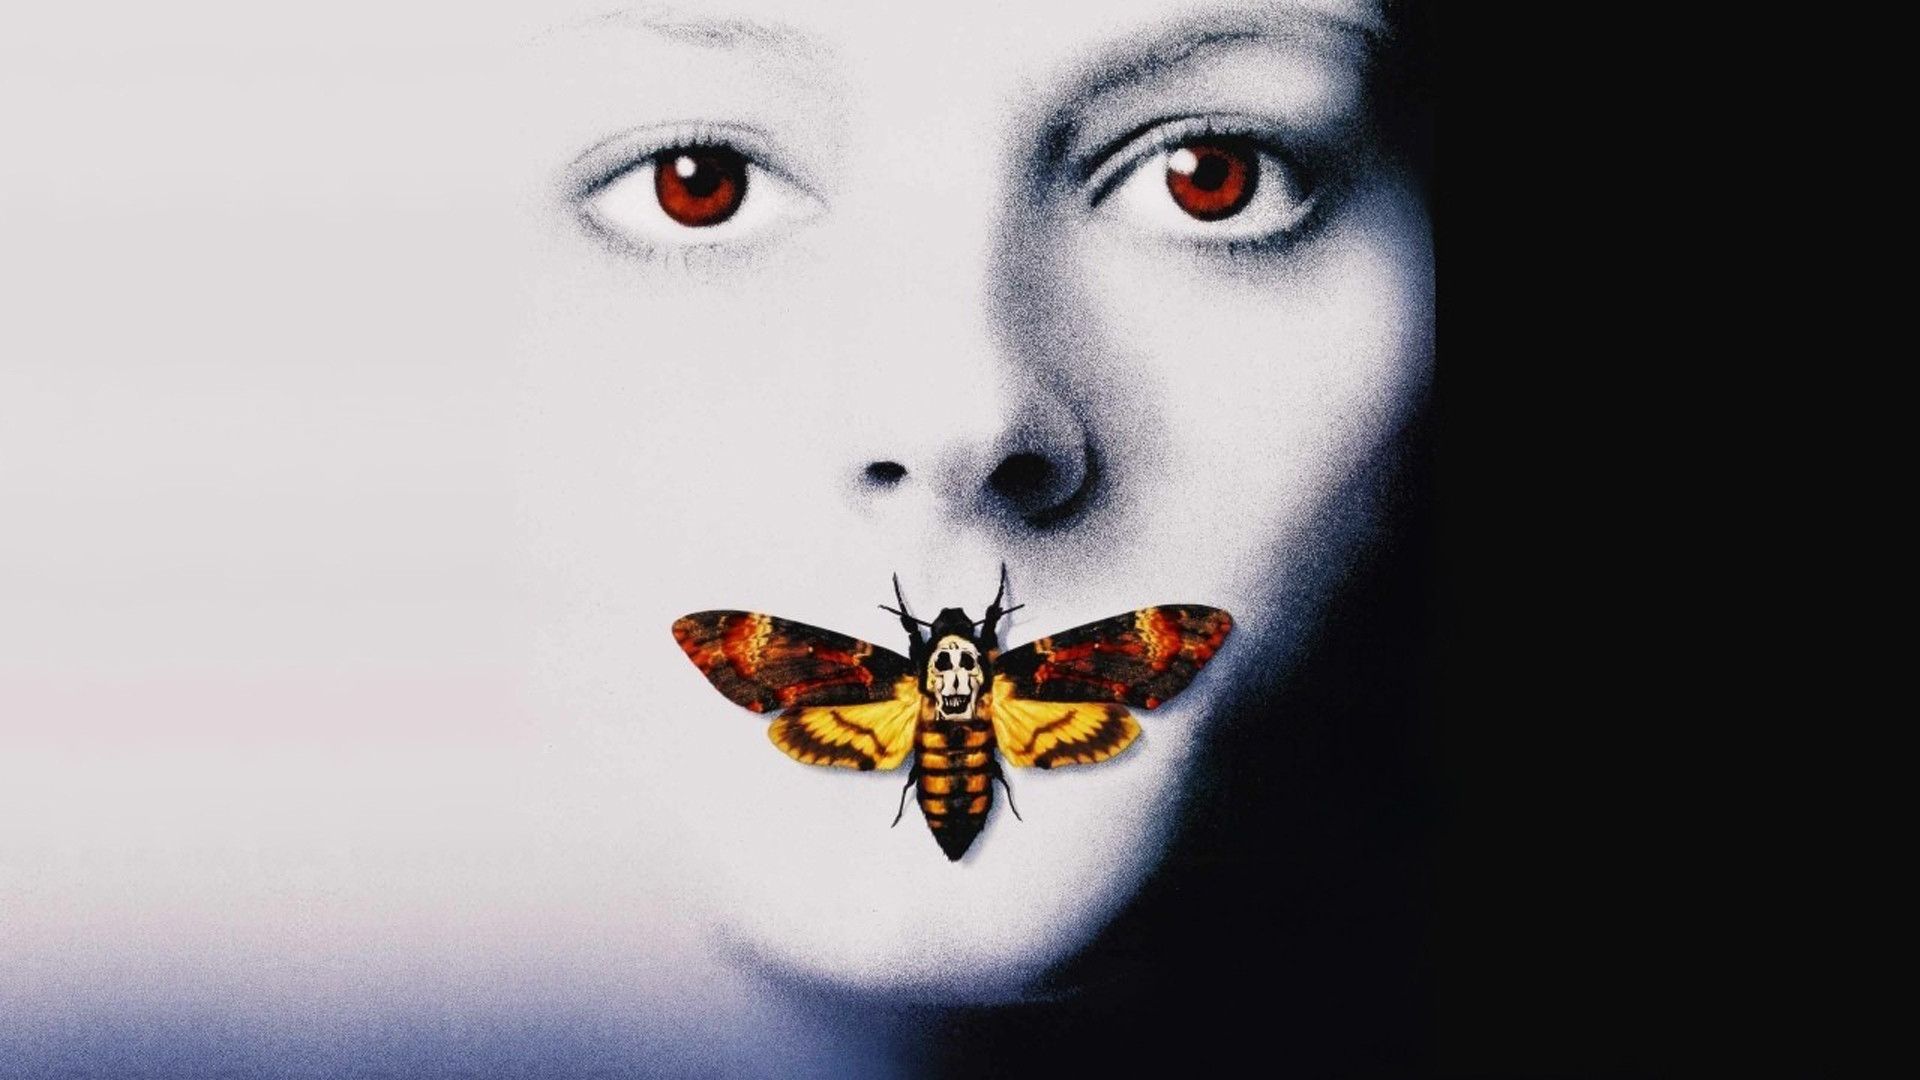 silence of the lambs wallpaper (69+ images)